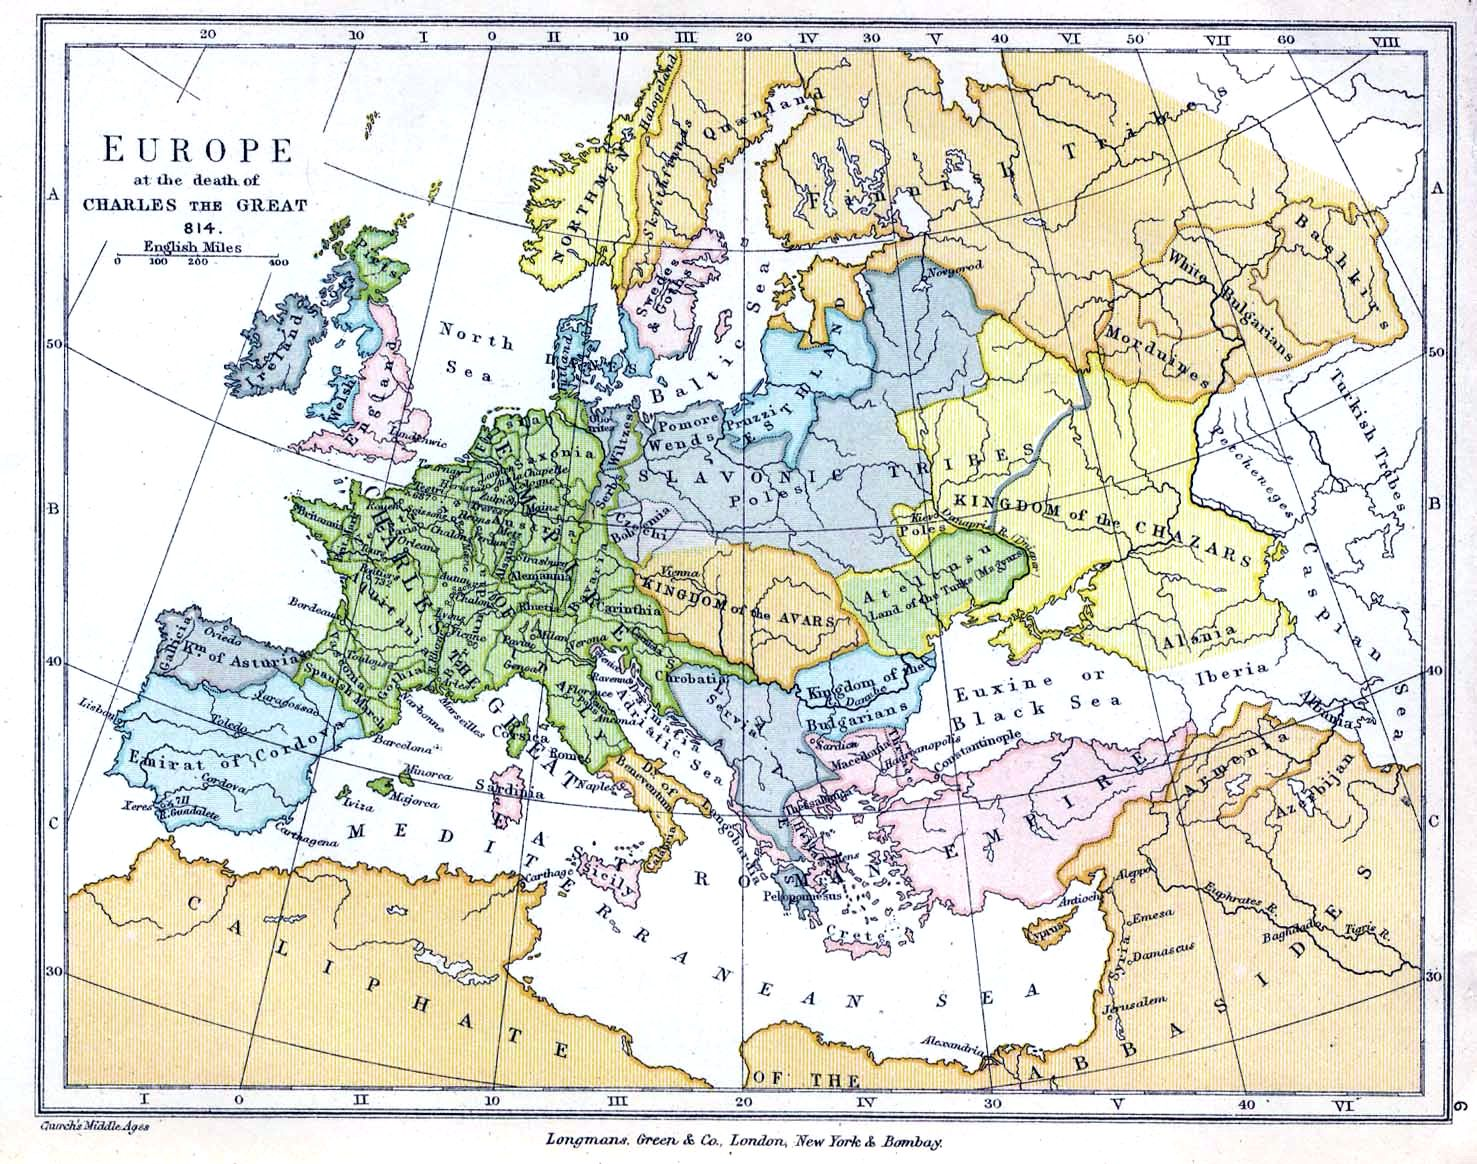 Europe at the death of Charlemagne, 814